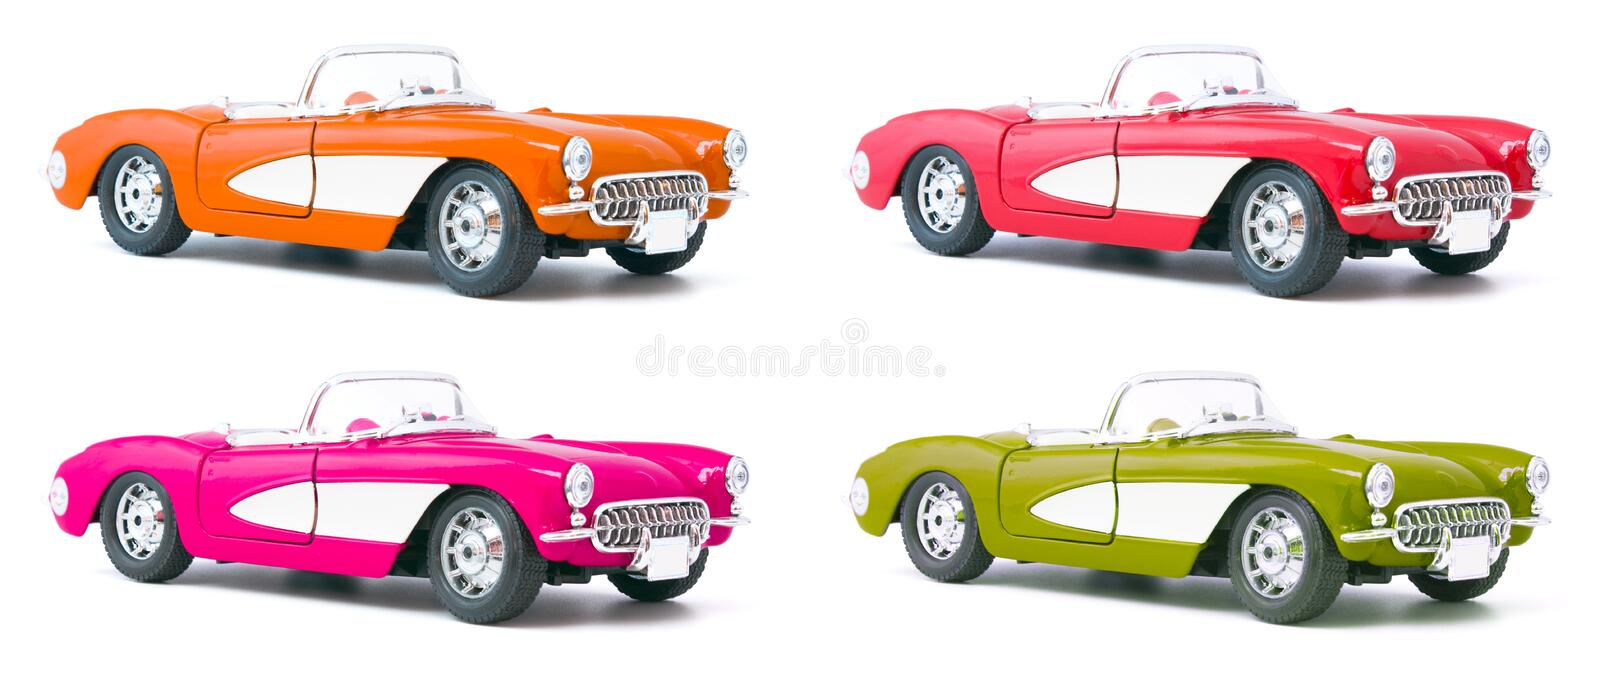 Set of four toy model cars royalty free stock photo